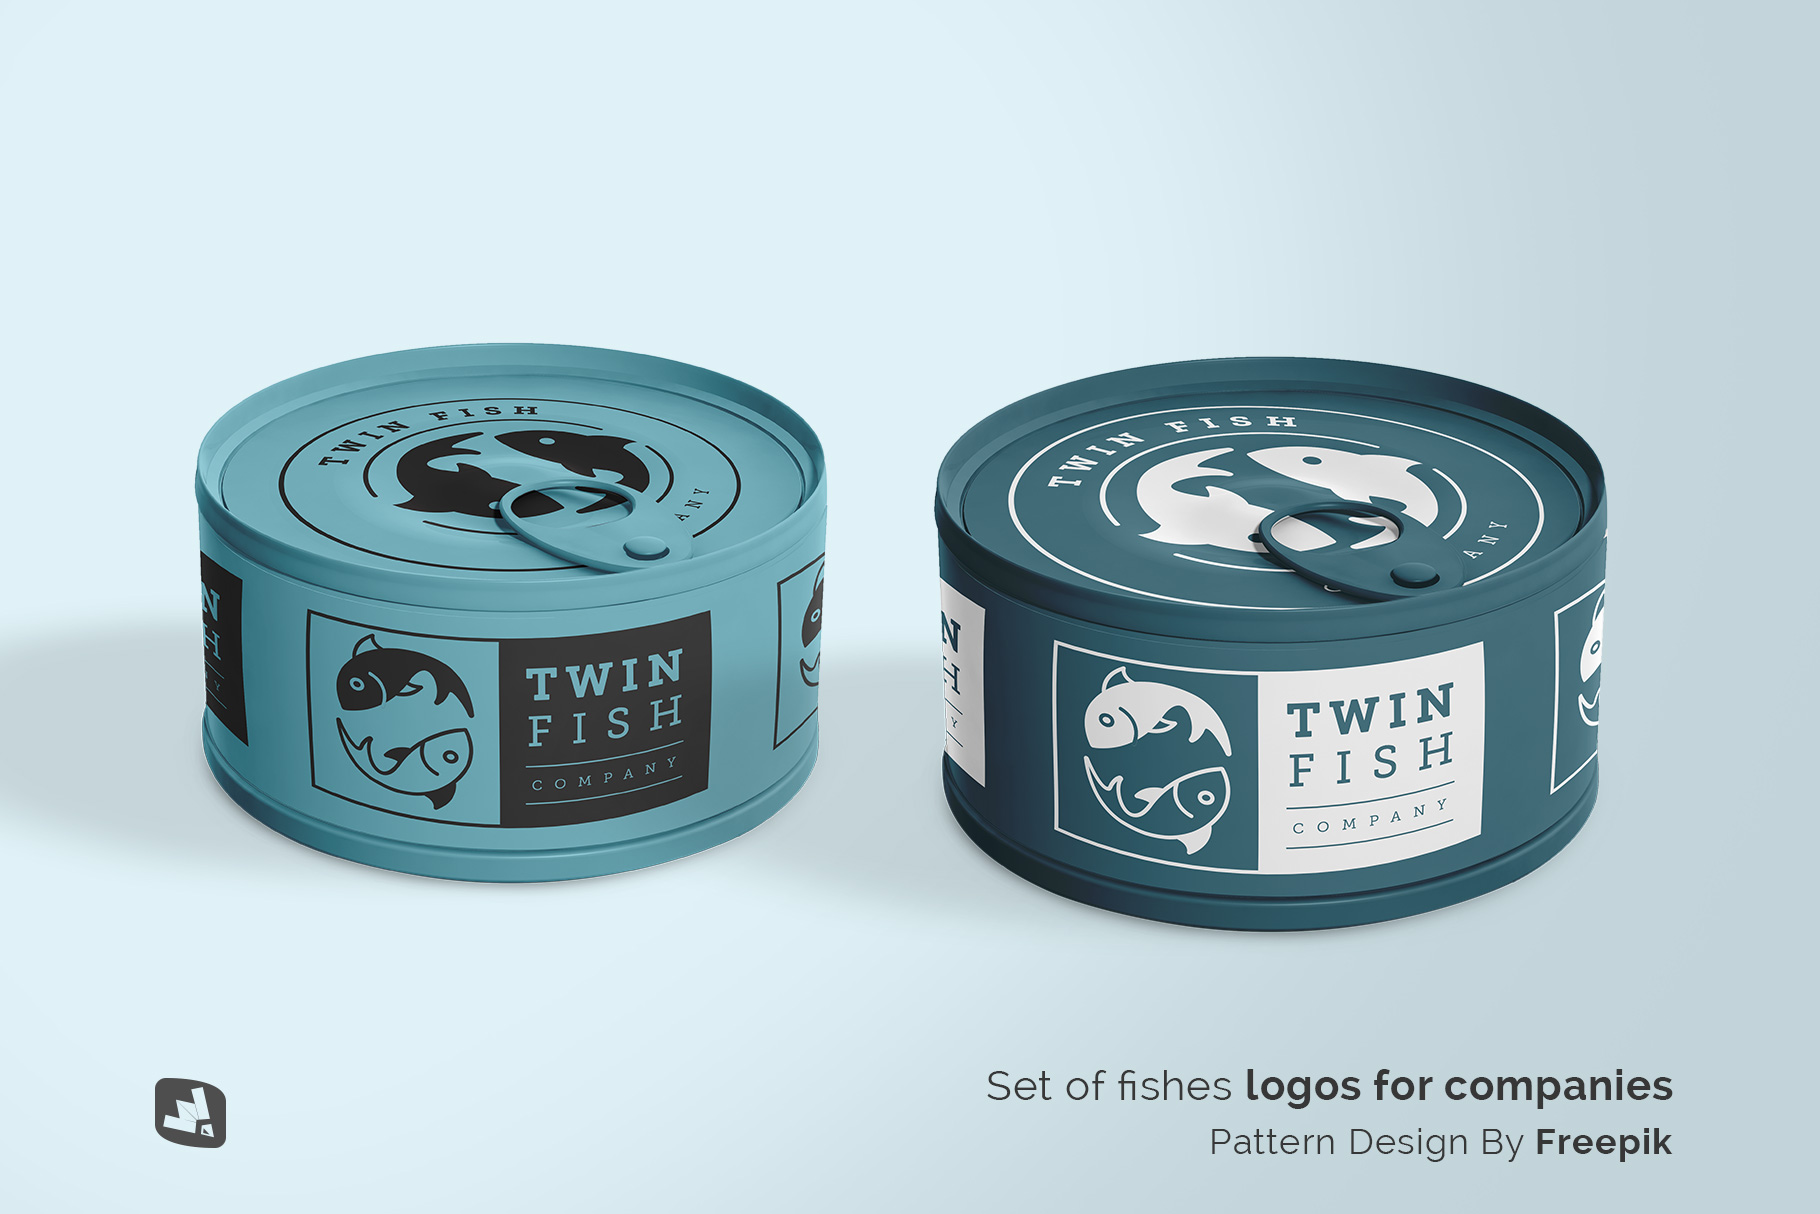 designer's credit of the circular canned food packaging mockup